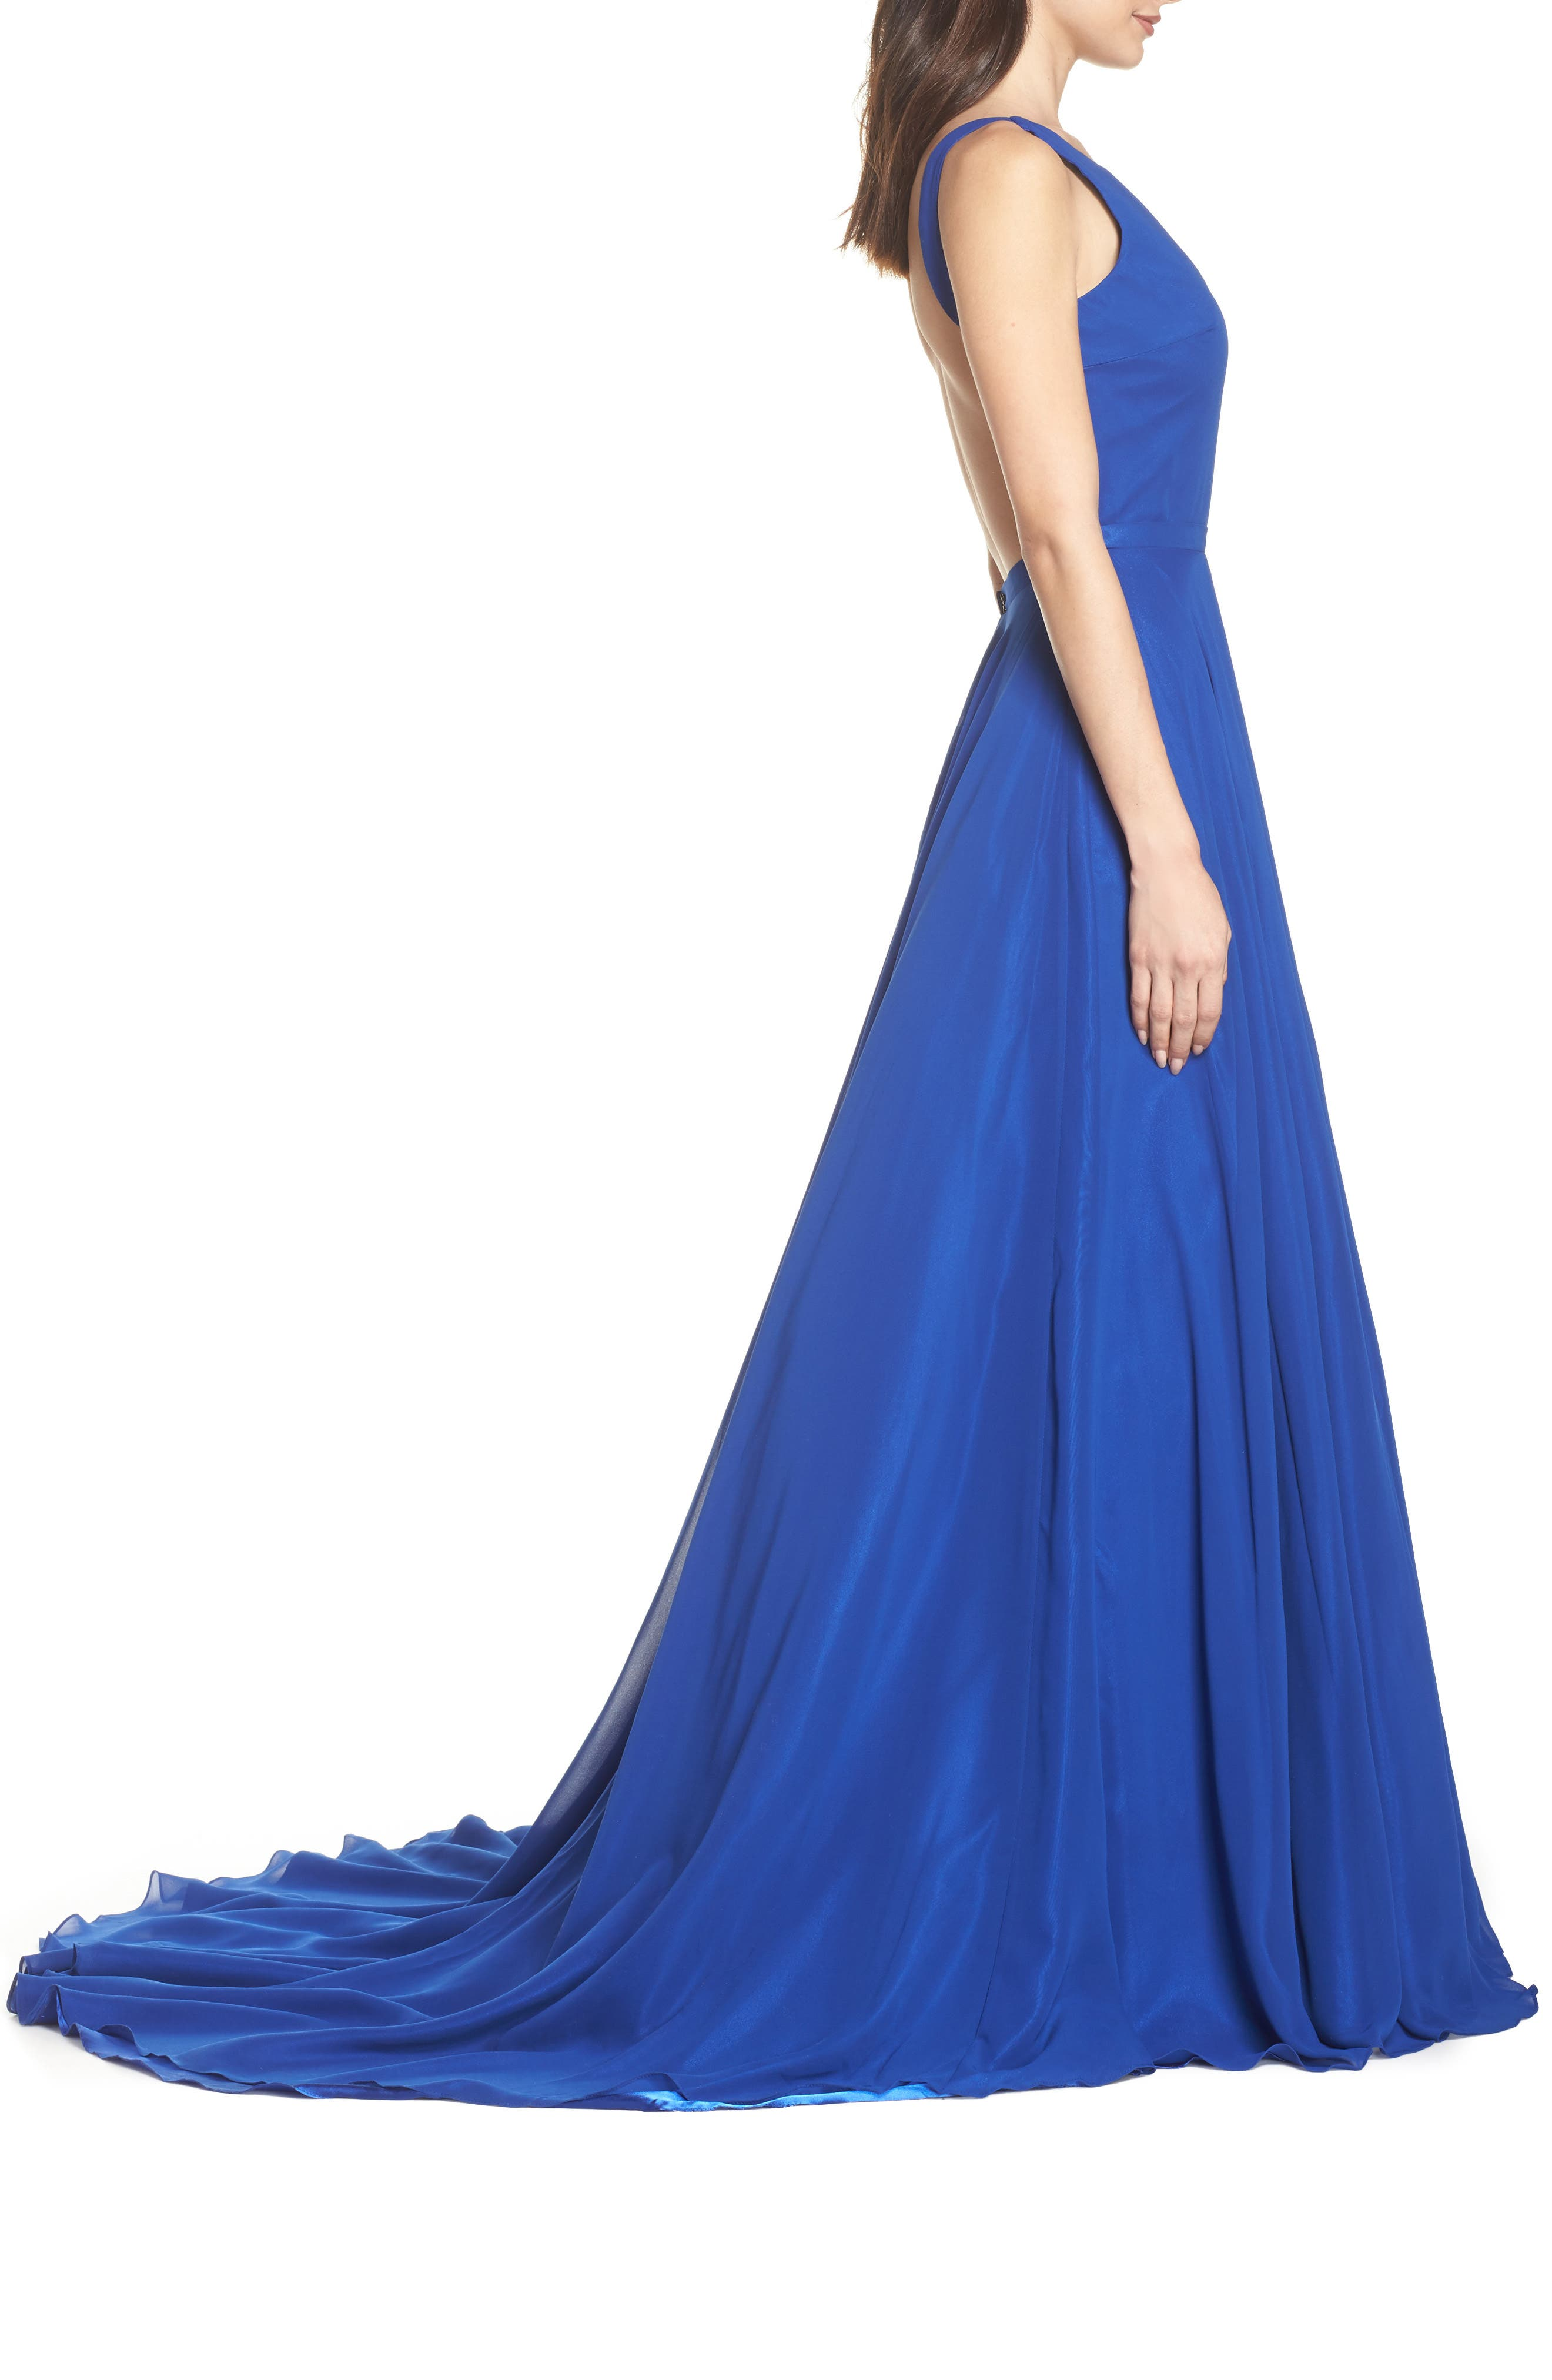 Mac Duggal Bateau Neck Ballgown,                             Alternate thumbnail 3, color,                             415